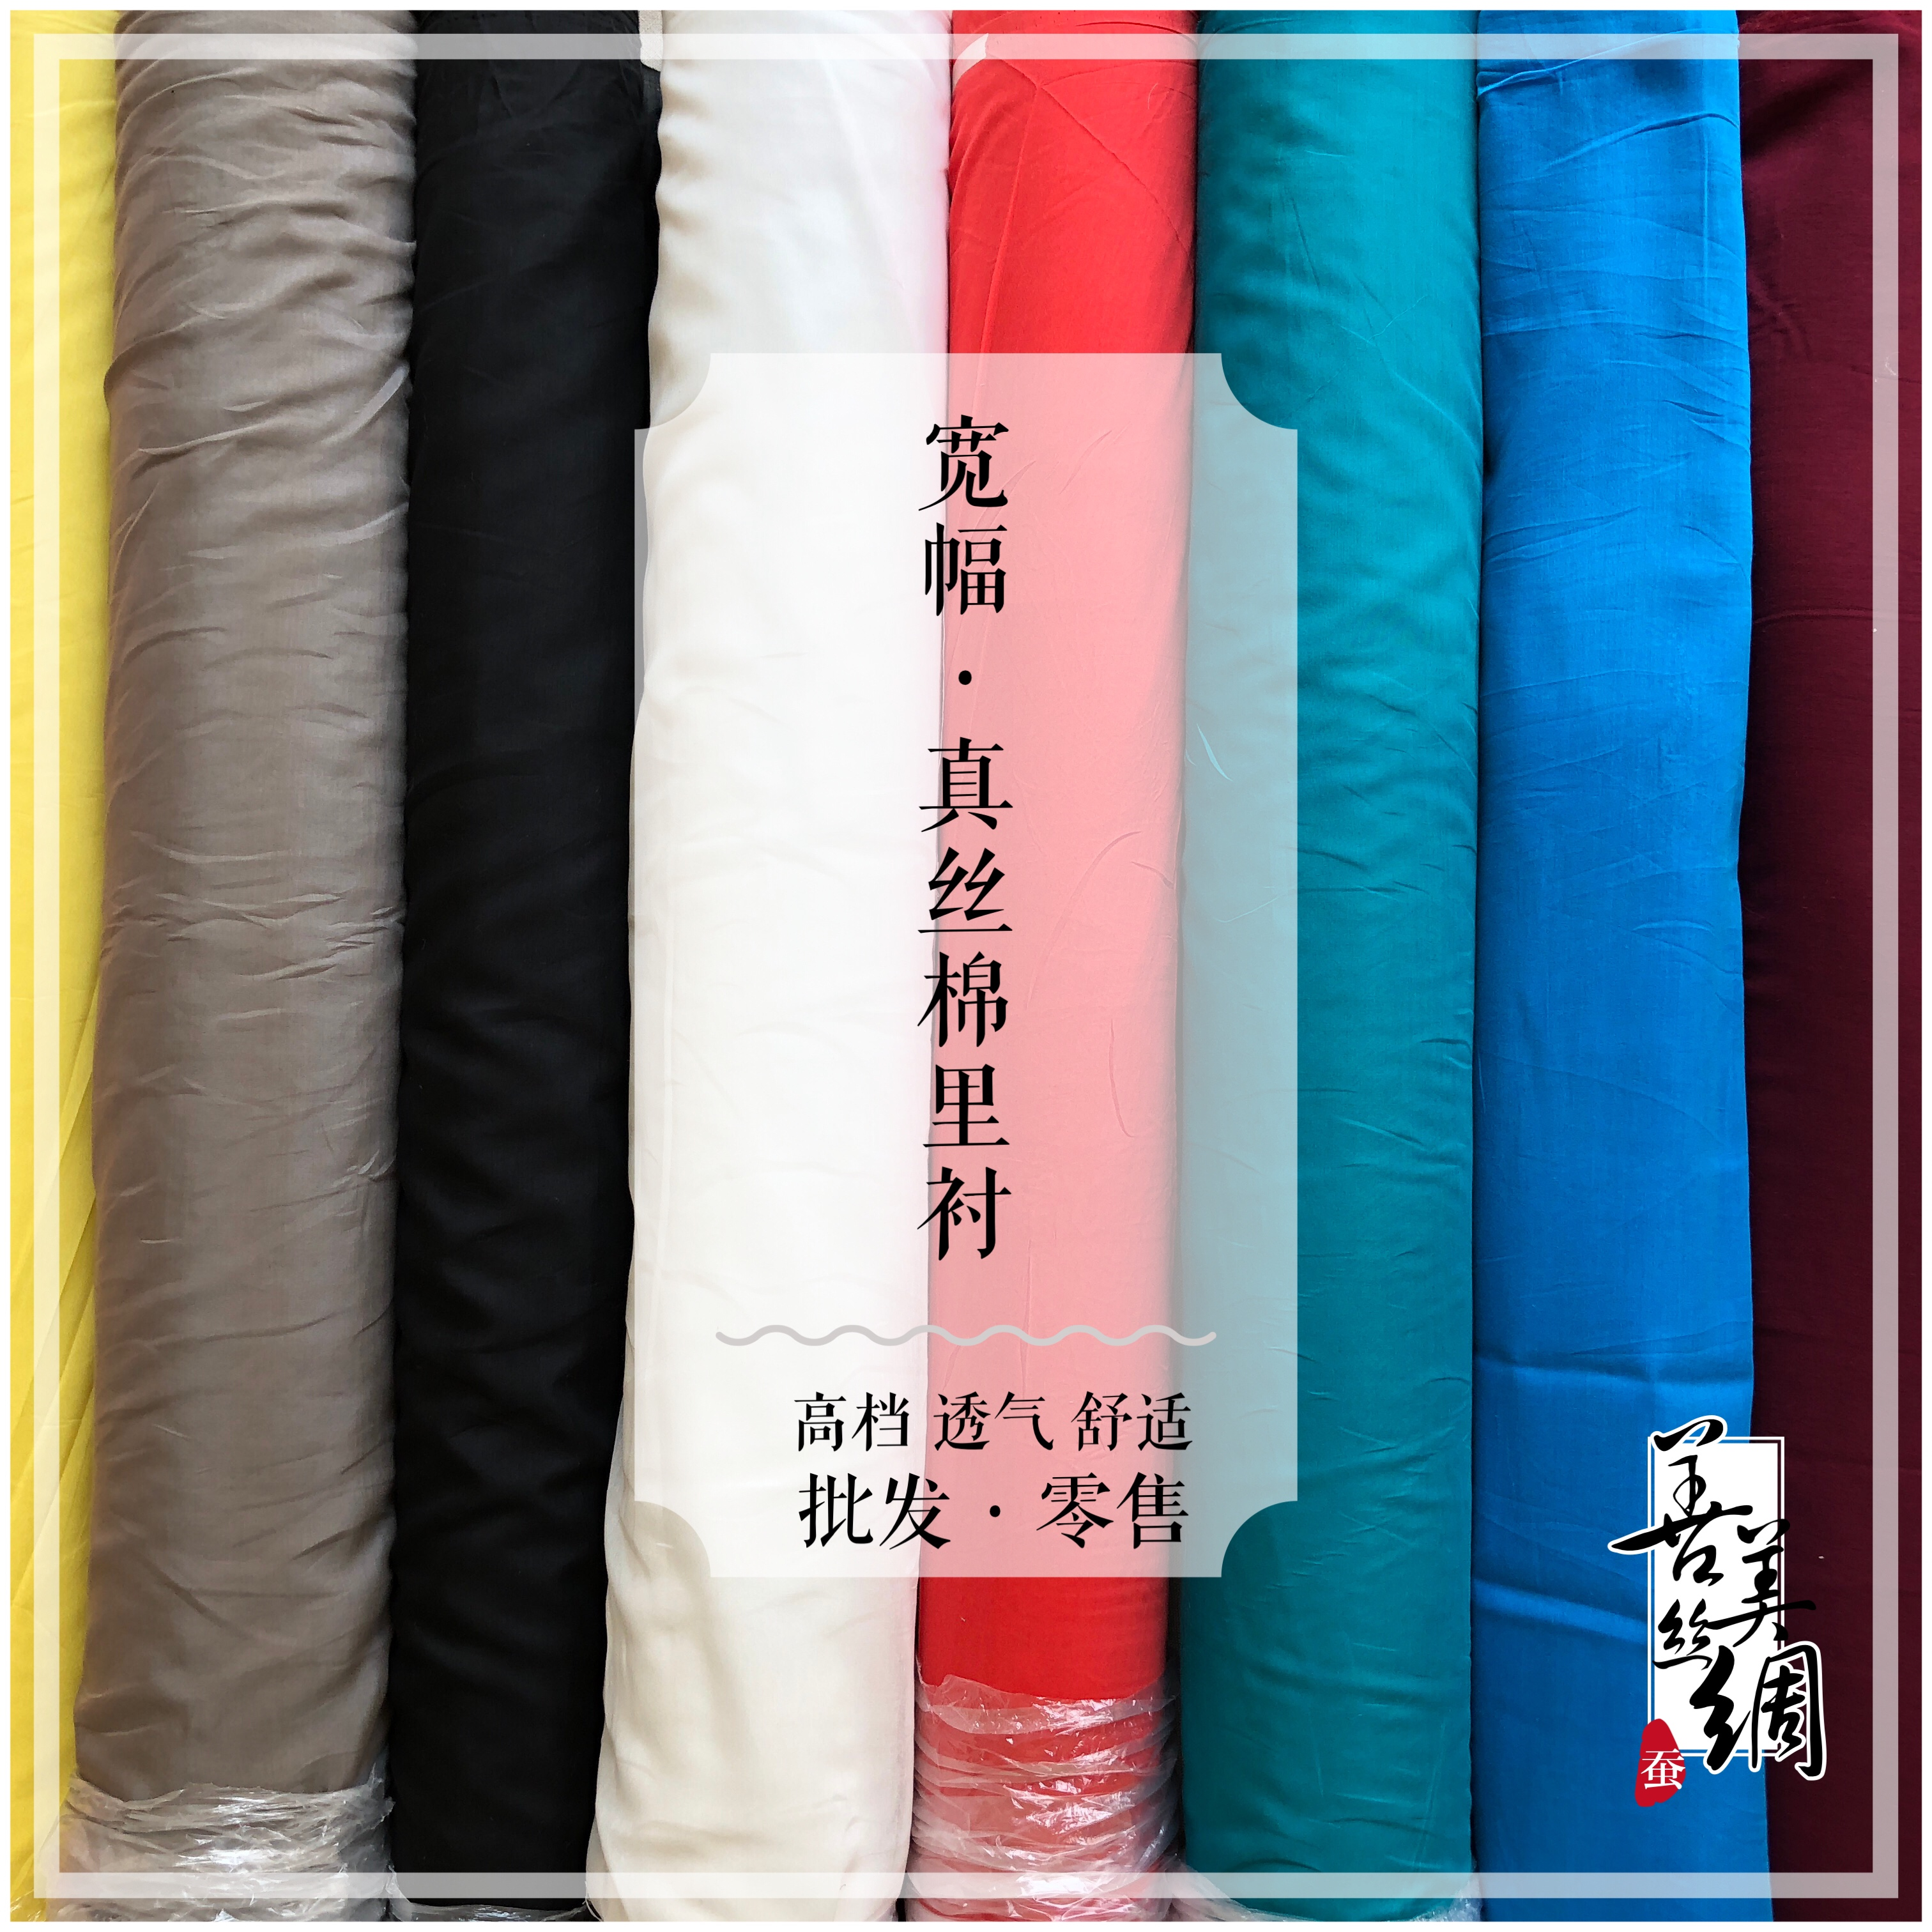 Sammy silk cotton fabric solid color summer shirt dress backing inner lining cloth 9 ~ 10mm multi color in